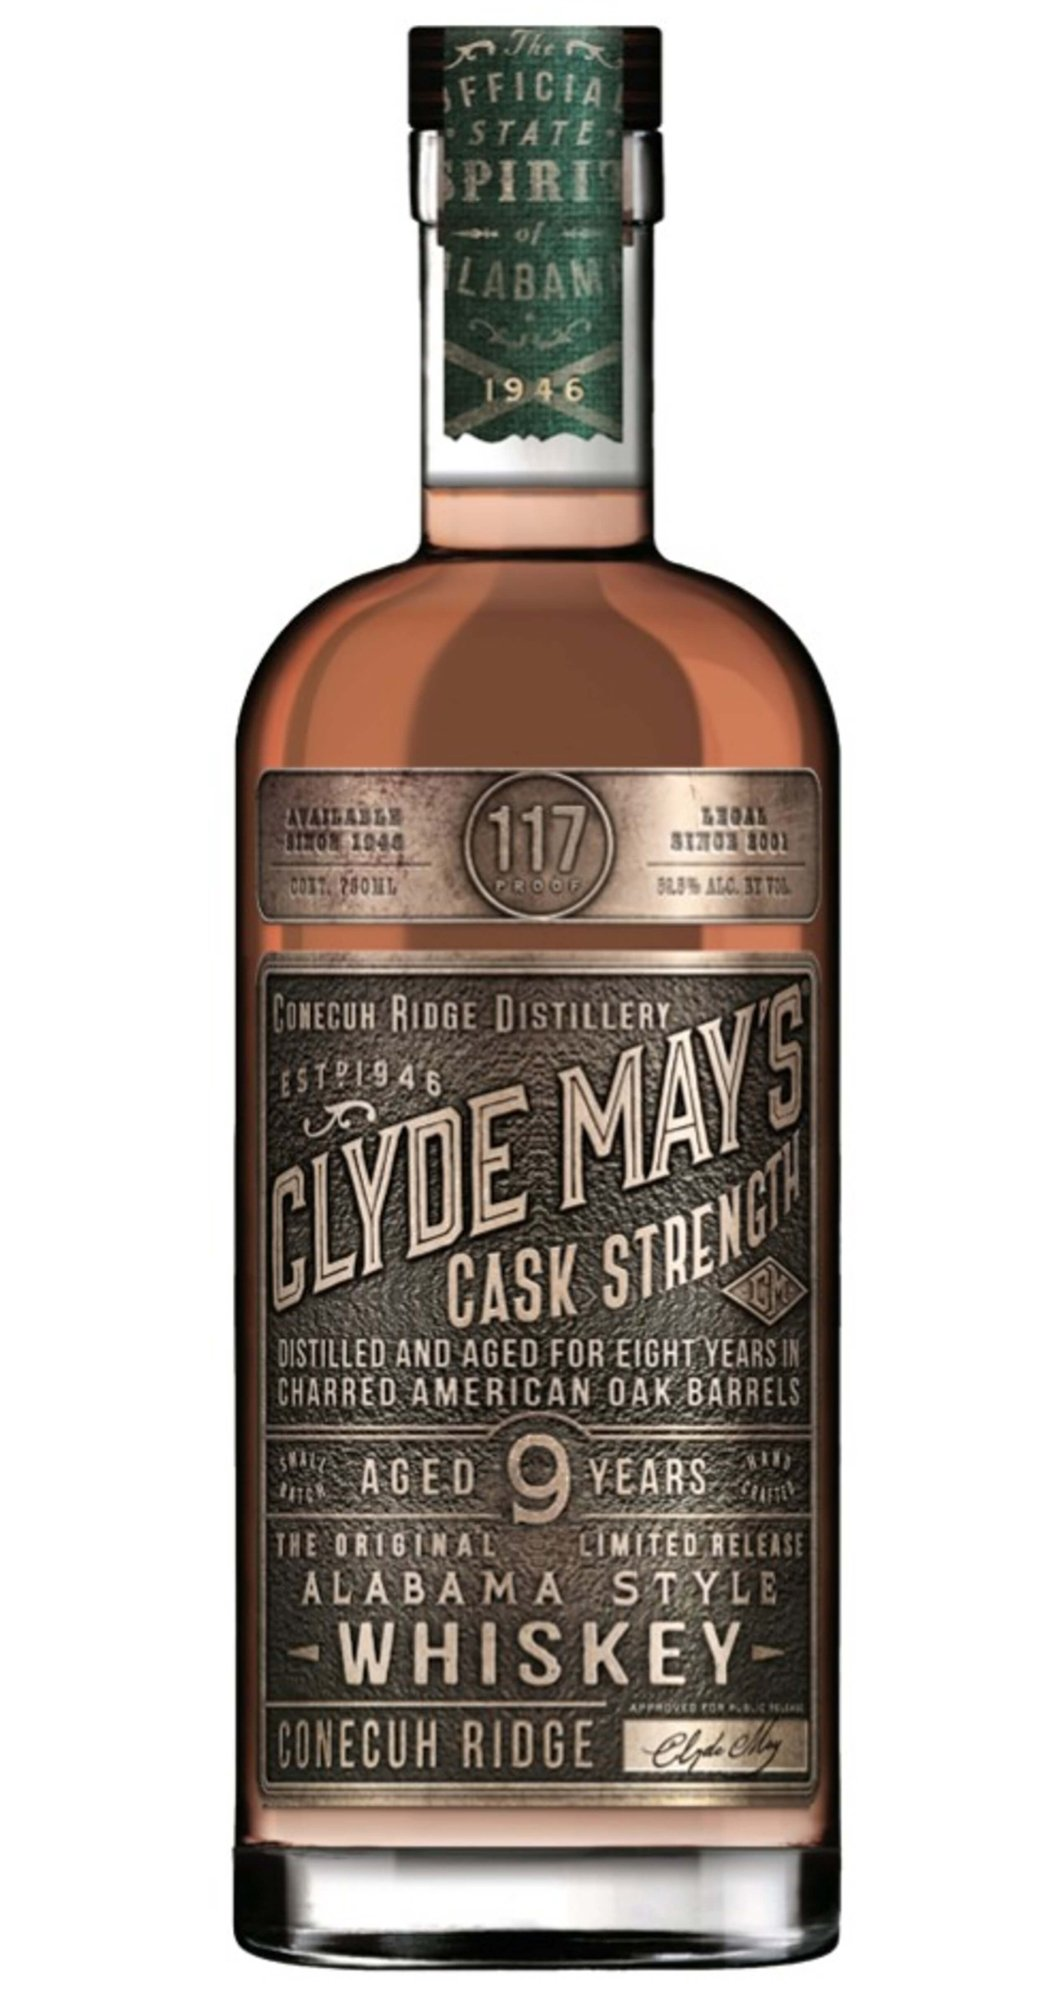 Alabama distiller Clyde May's Whiskey releases 9-year Cask Strength whiskey - What's Shakin' week of June 12